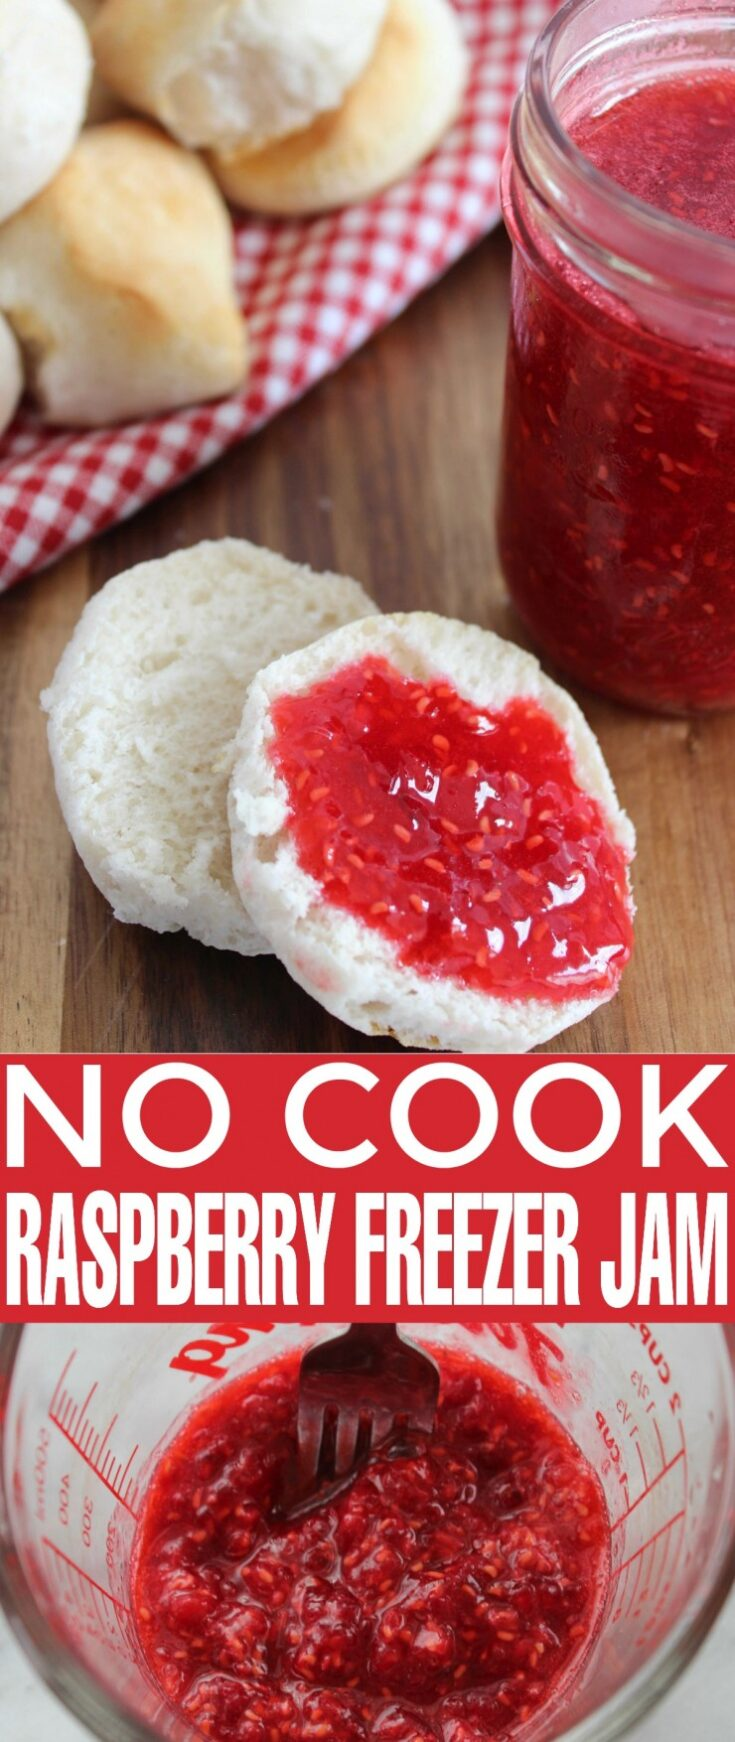 No Cook Raspberry Freezer Jam